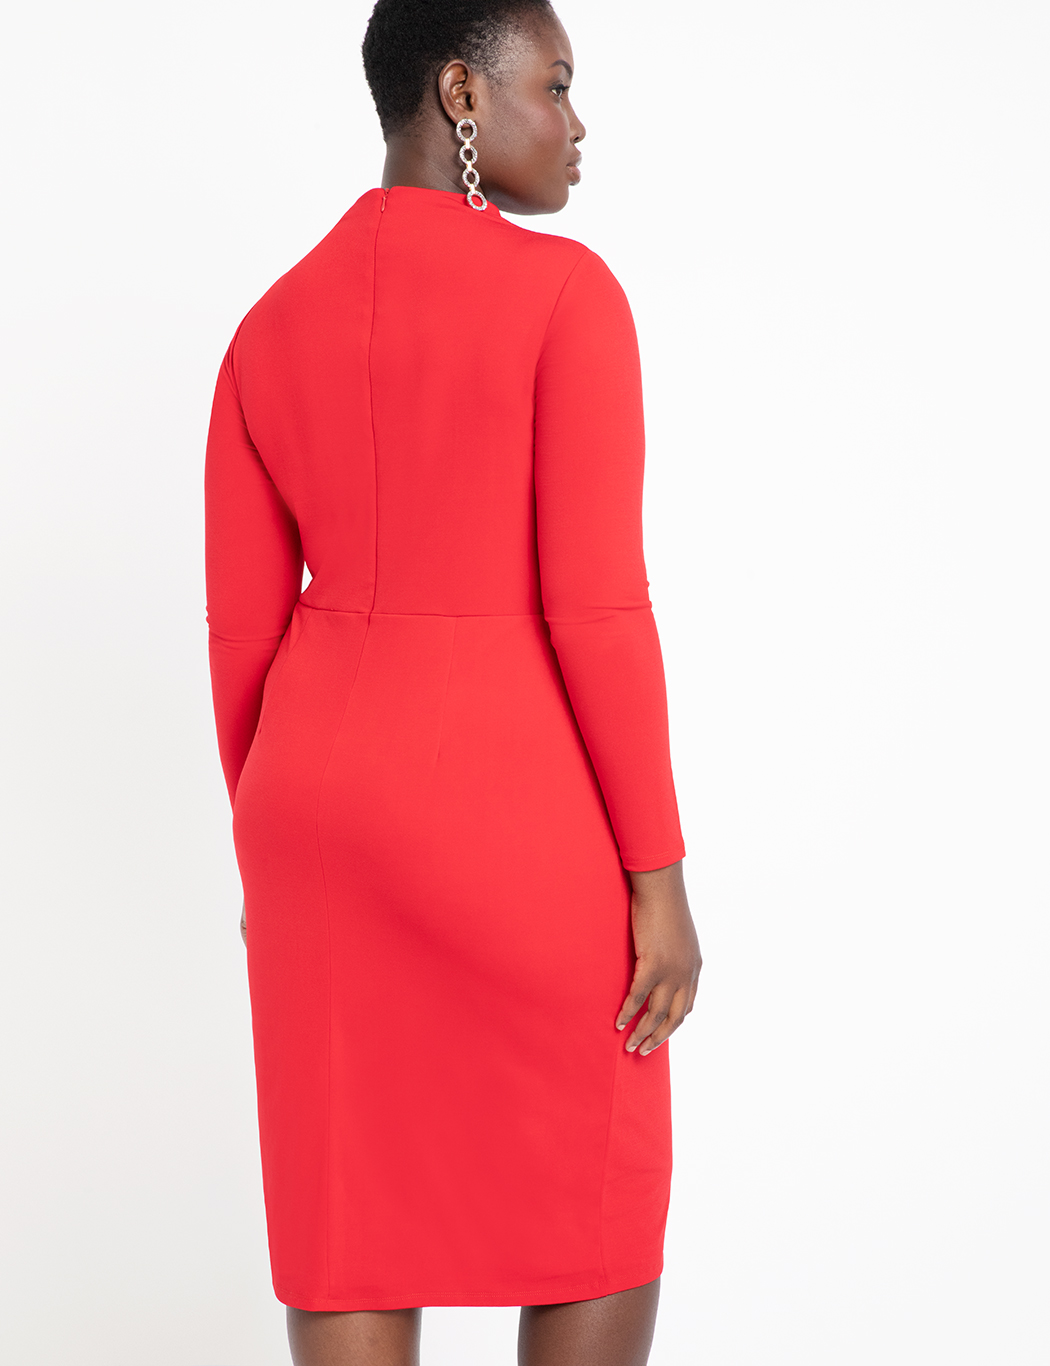 Ruched Front Dress with Slit